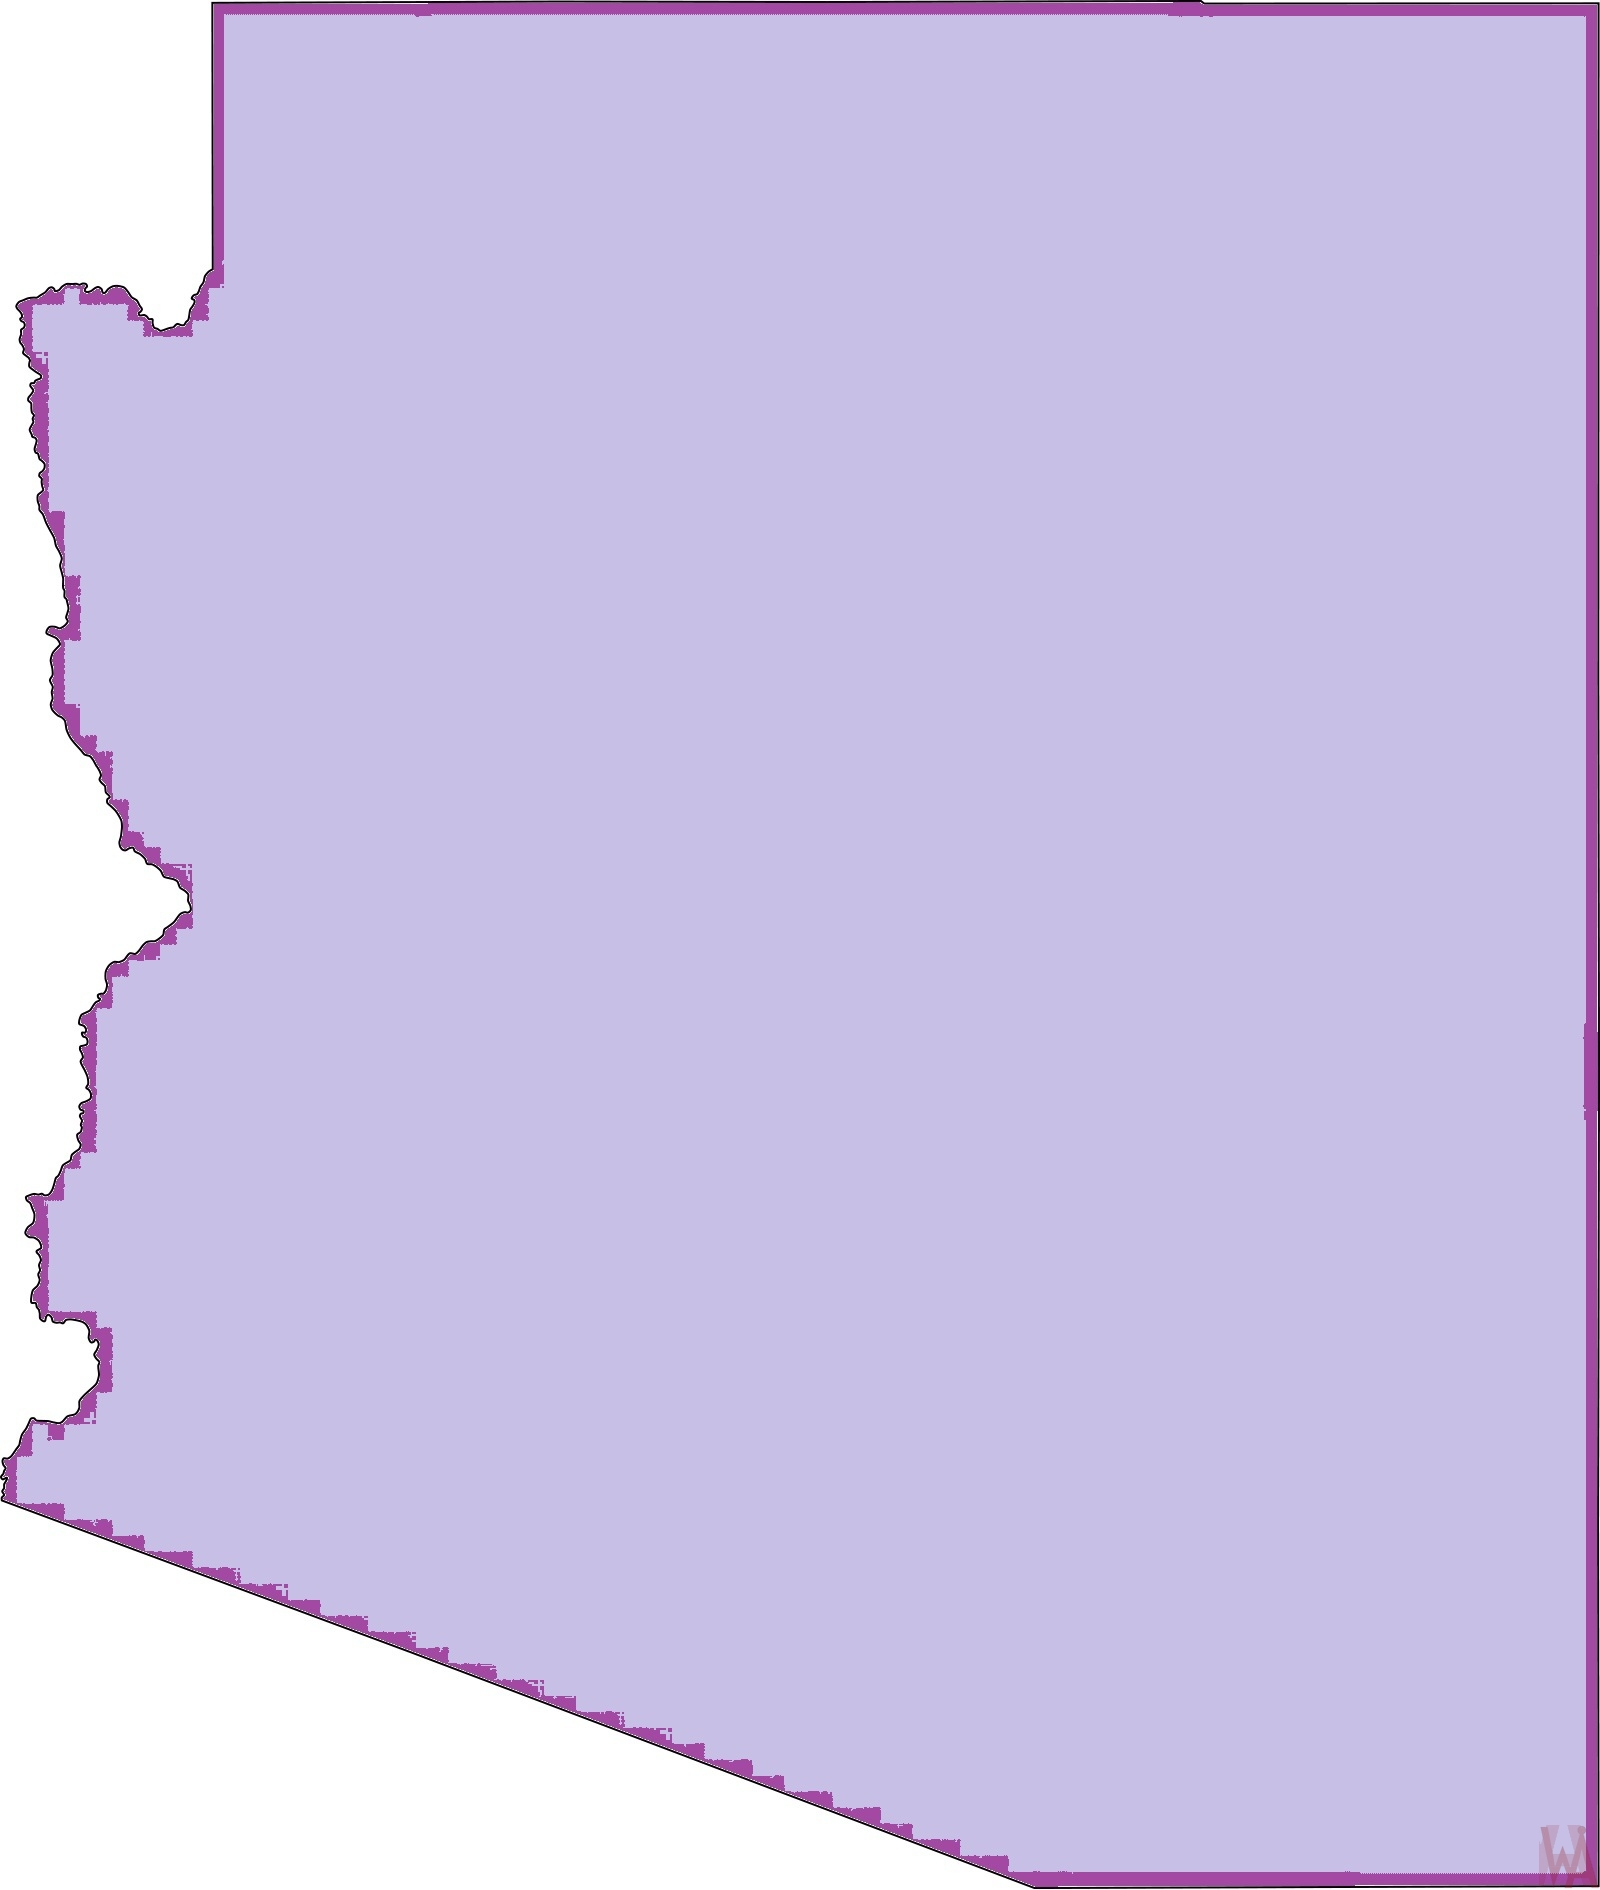 Arizona Blank Outline Map |  Blank Outline Map of Arizona – 4